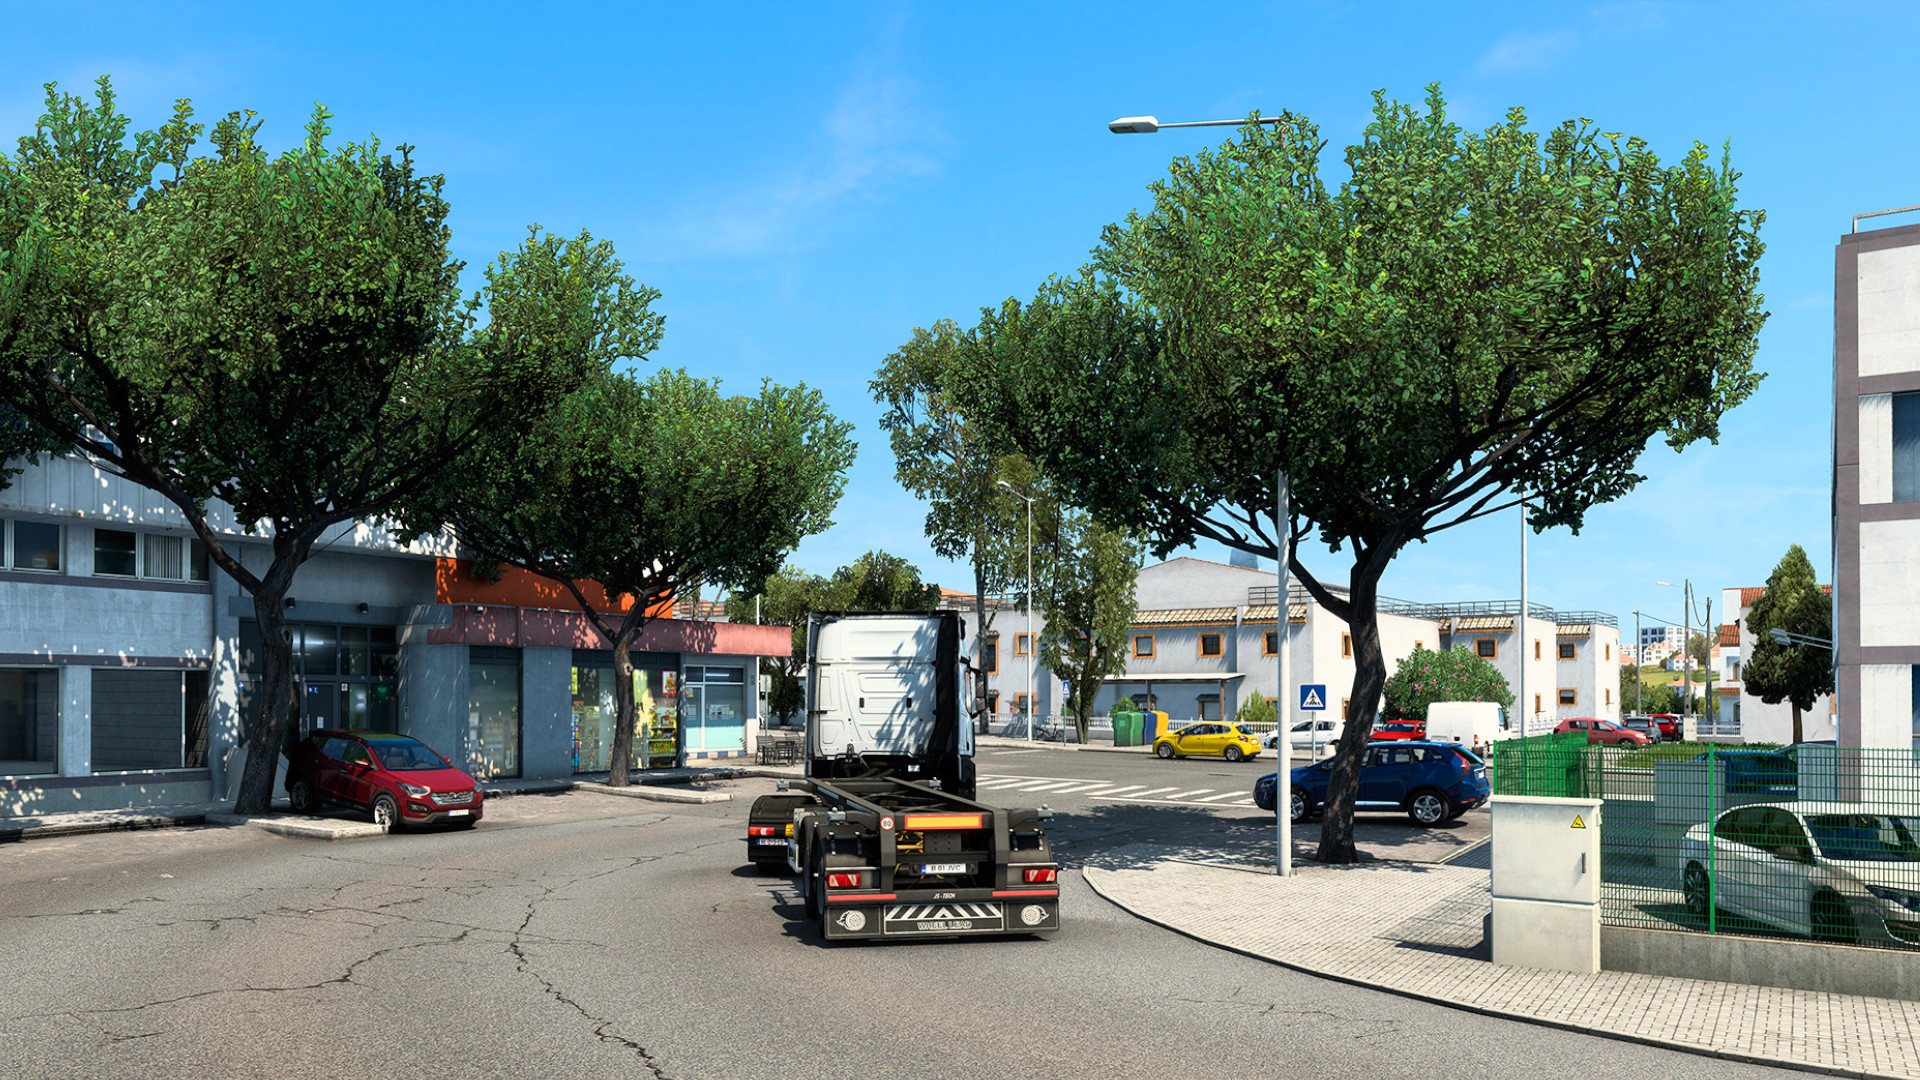 Euro Truck Simulator 2 and ATS are getting revamped force feedback